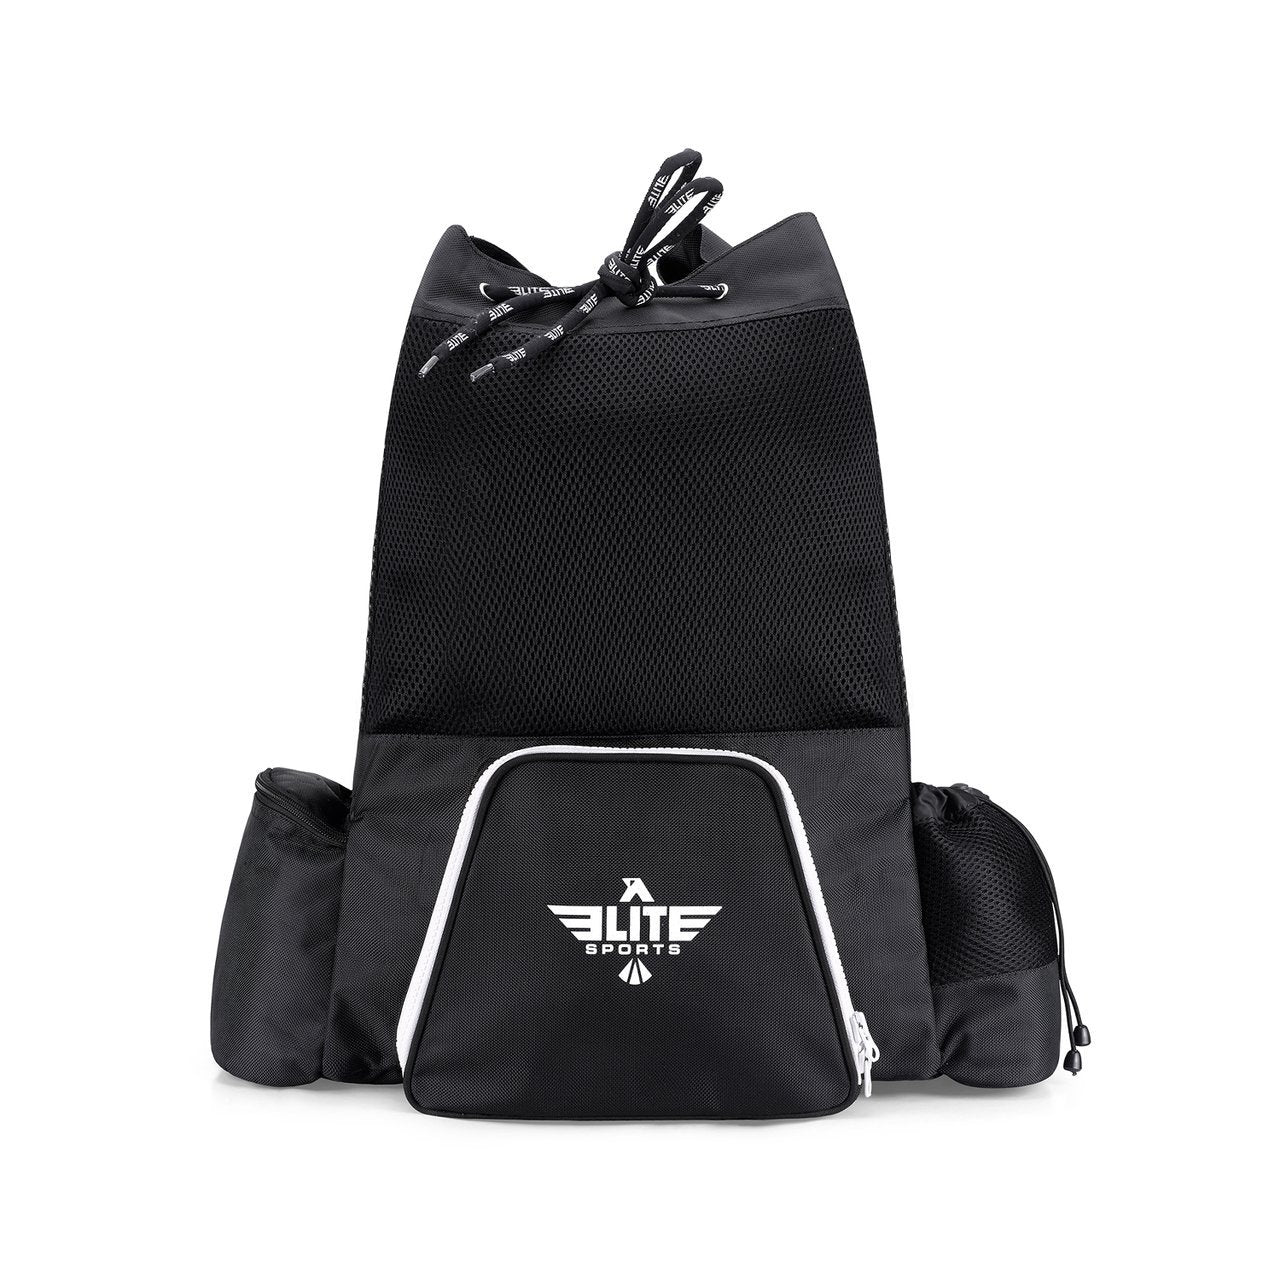 Load image into Gallery viewer, Elite Sports Mesh Black Medium Taekwondo Gear Gym Bag & Backpack